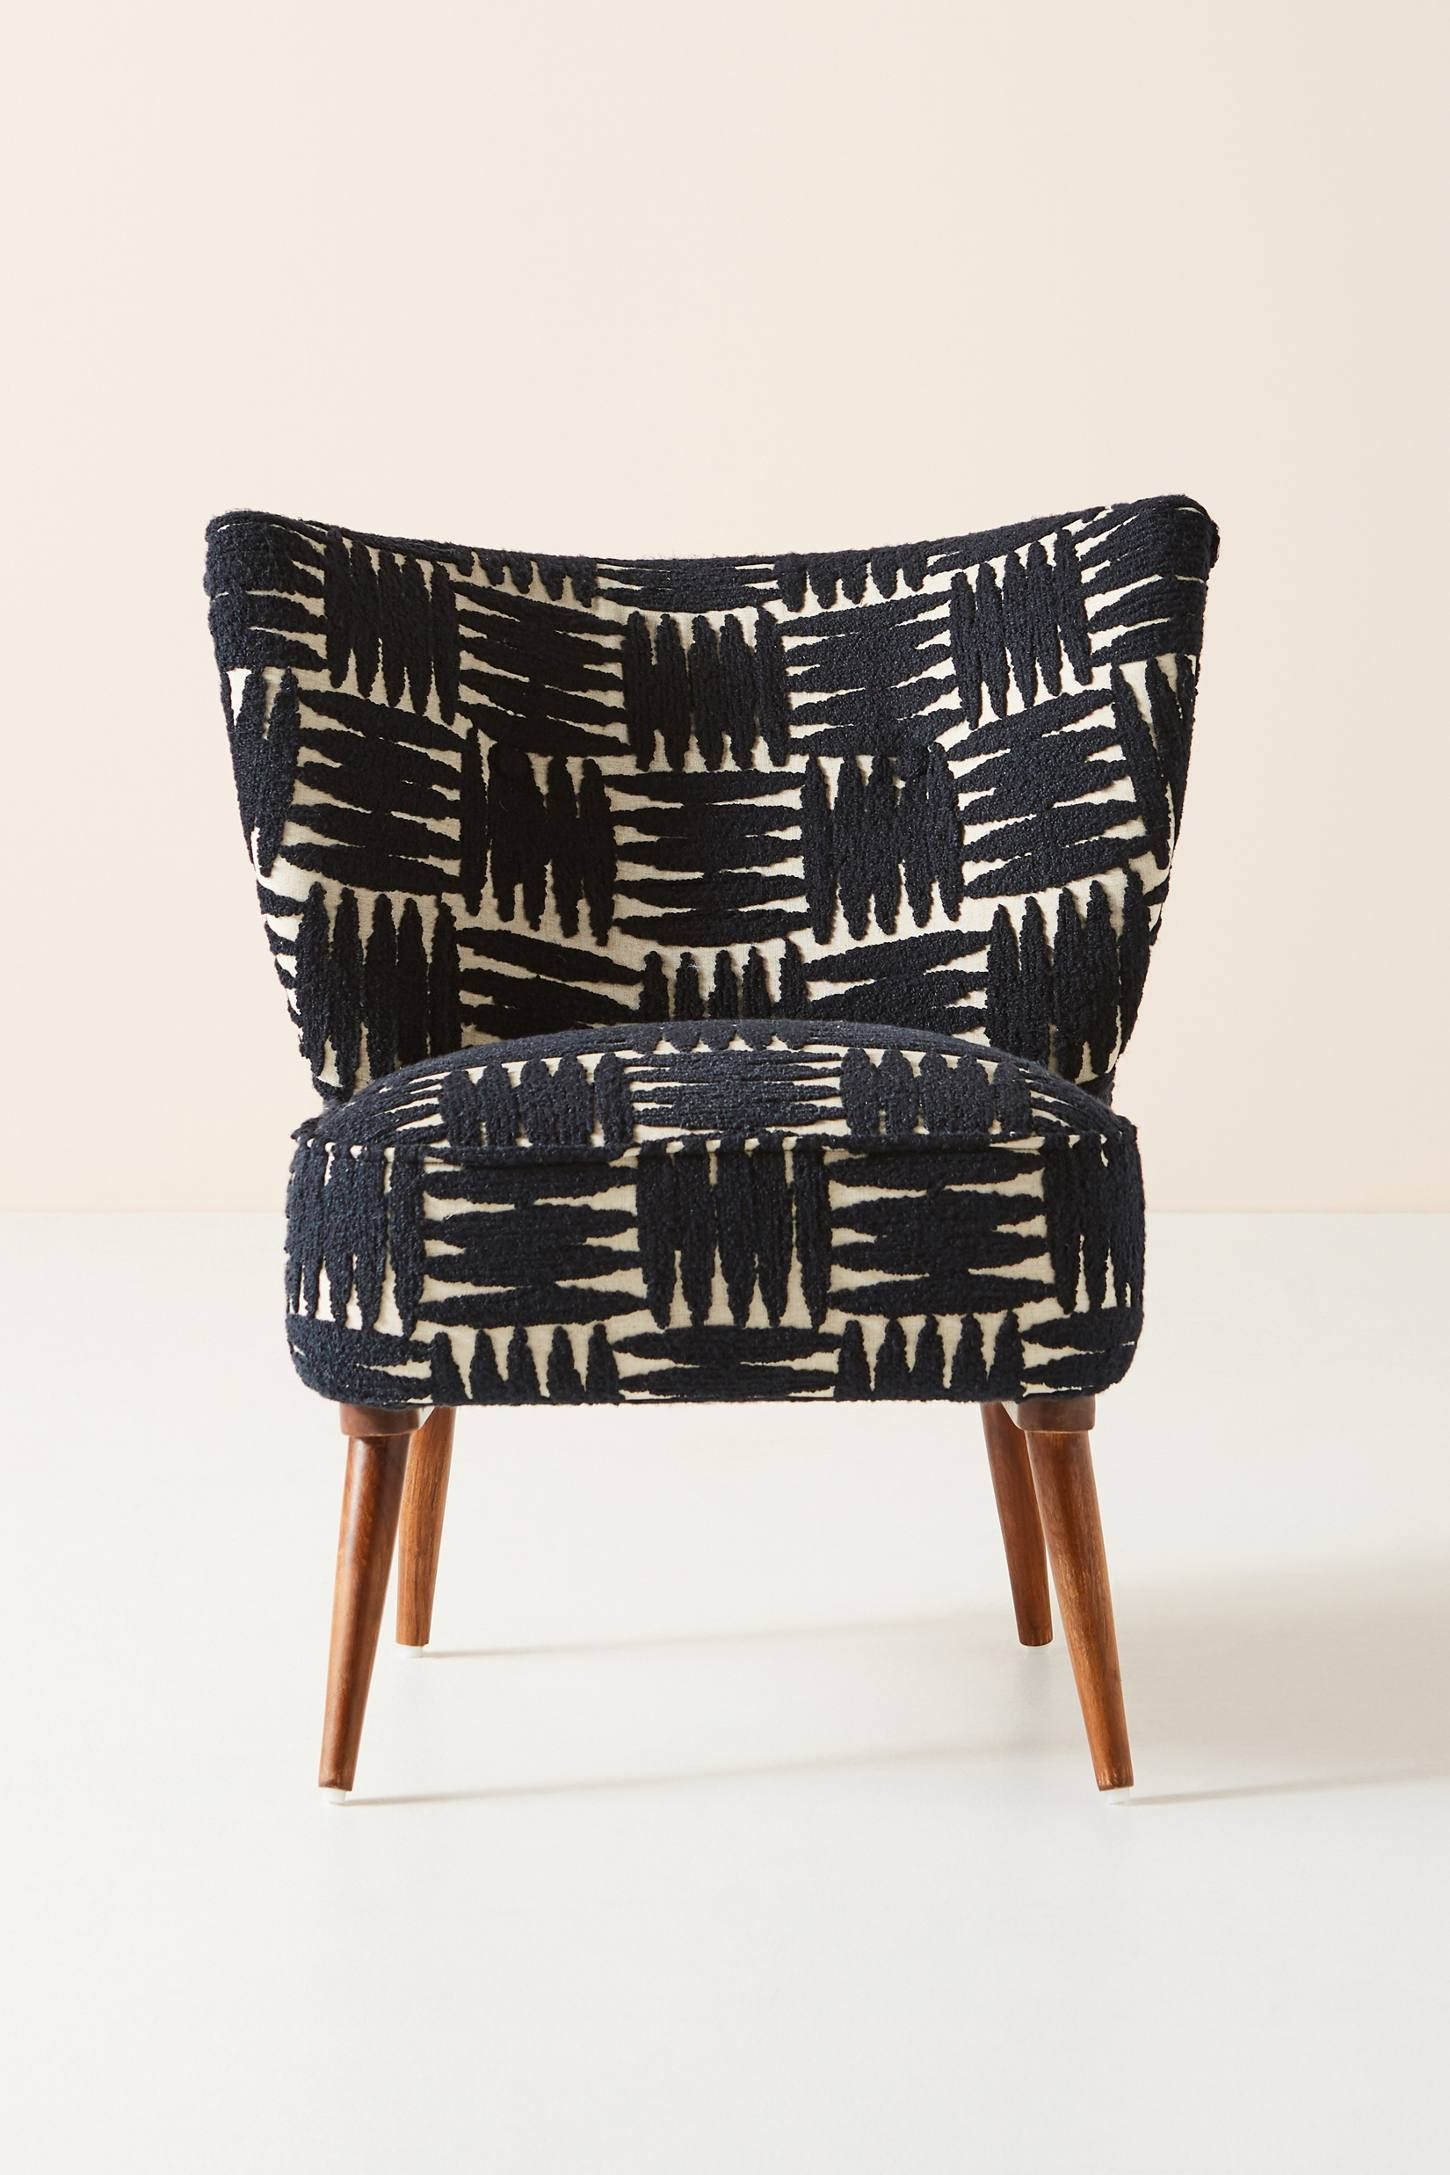 Mumbai Petite Accent Chair Best office chair, Accent